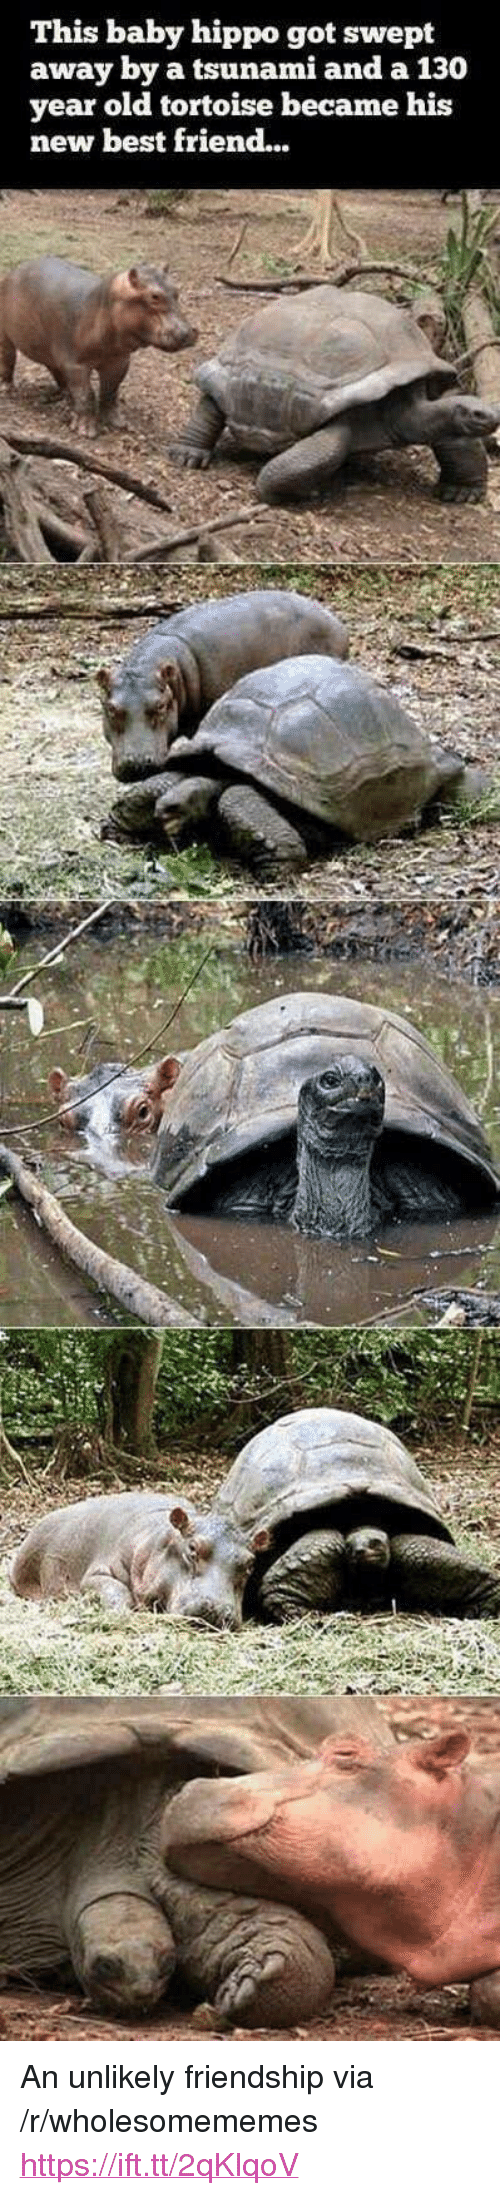 """Baby Hippo: This baby hippo got swept  away by a tsunami and a 130  year old tortoise became his  new best friend... <p>An unlikely friendship via /r/wholesomememes <a href=""""https://ift.tt/2qKlqoV"""">https://ift.tt/2qKlqoV</a></p>"""